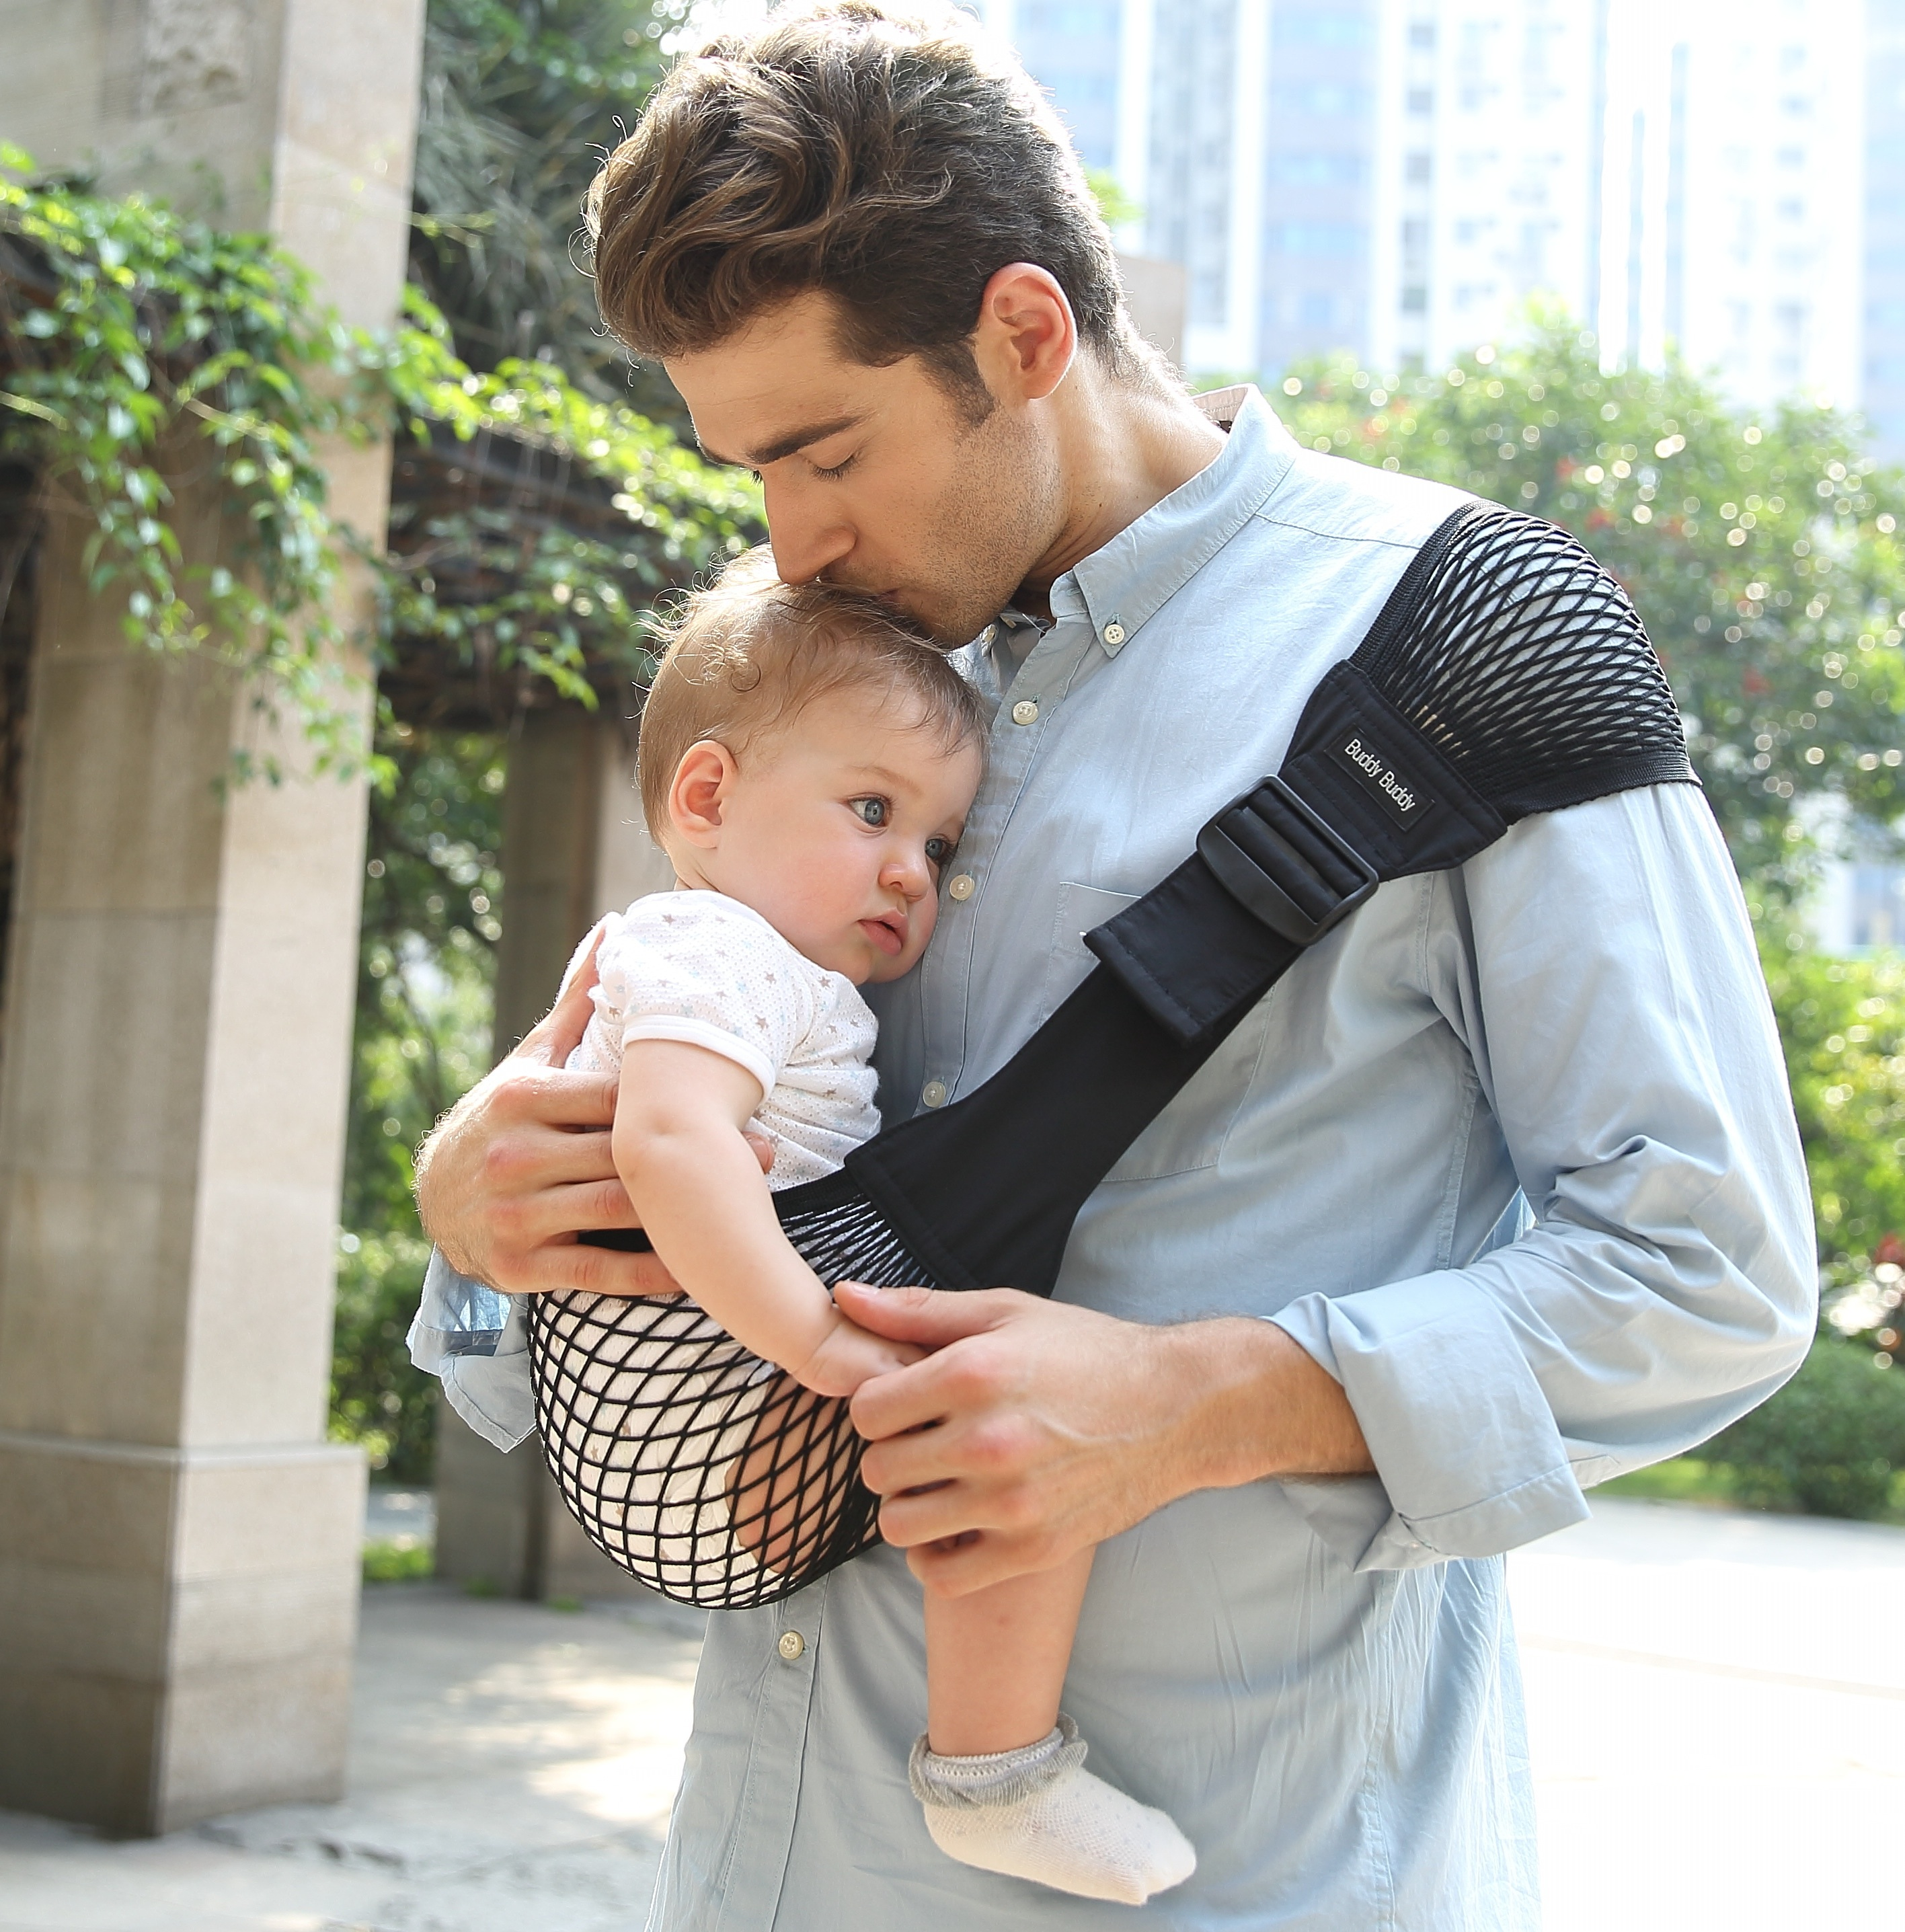 kantan net baby carrier  baby sling  lucky baby japan  babyrug - kantan net baby sling